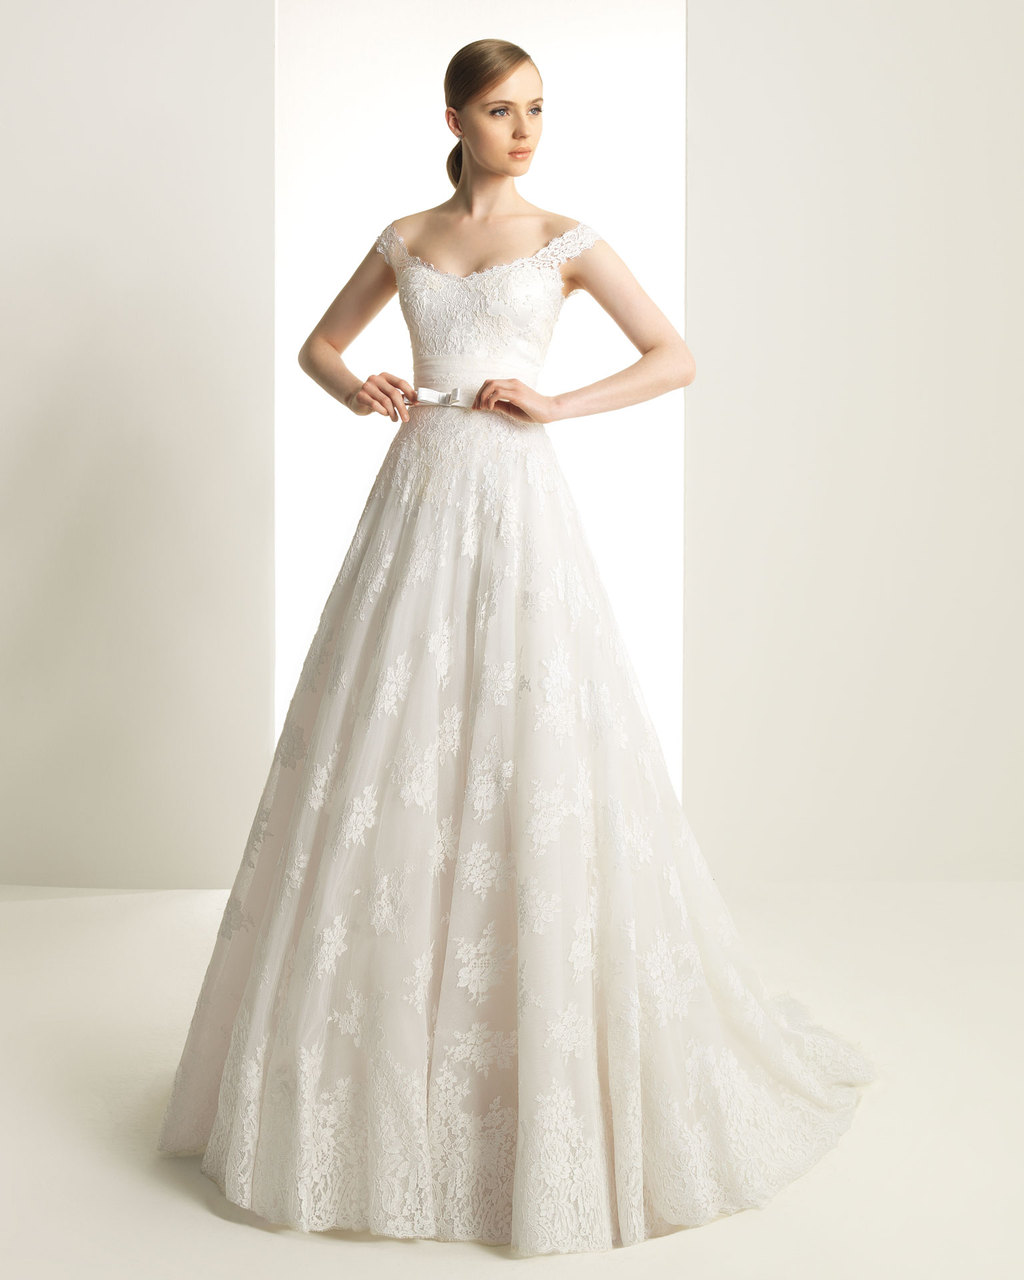 2013 wedding dress Zuhair Murad for Rosa Clara bridal gowns 109 Kiev